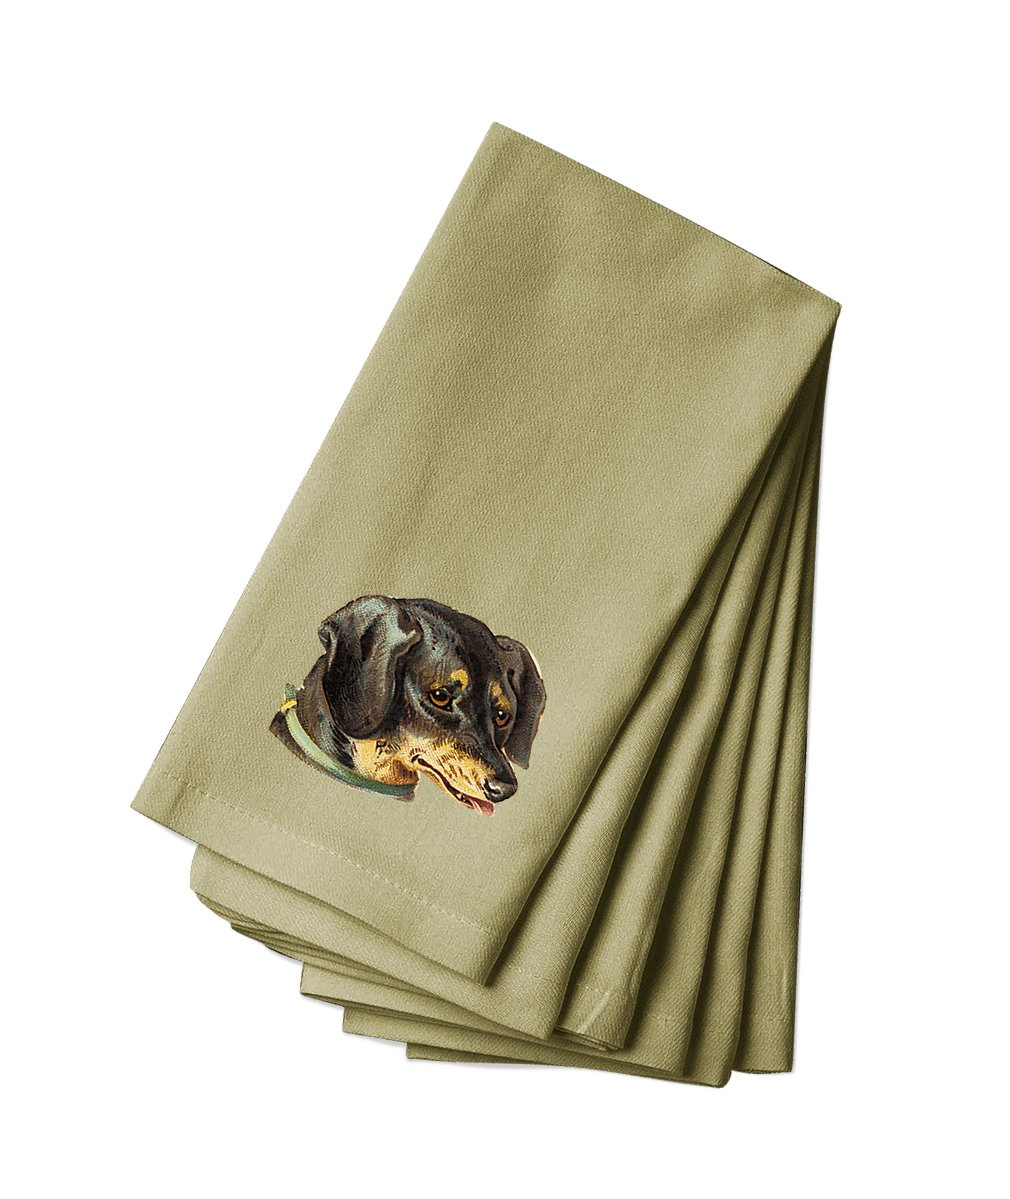 Style in Print Cotton Canvas Dinner Napkin Set Of 4 Dachshund Pets Animals By